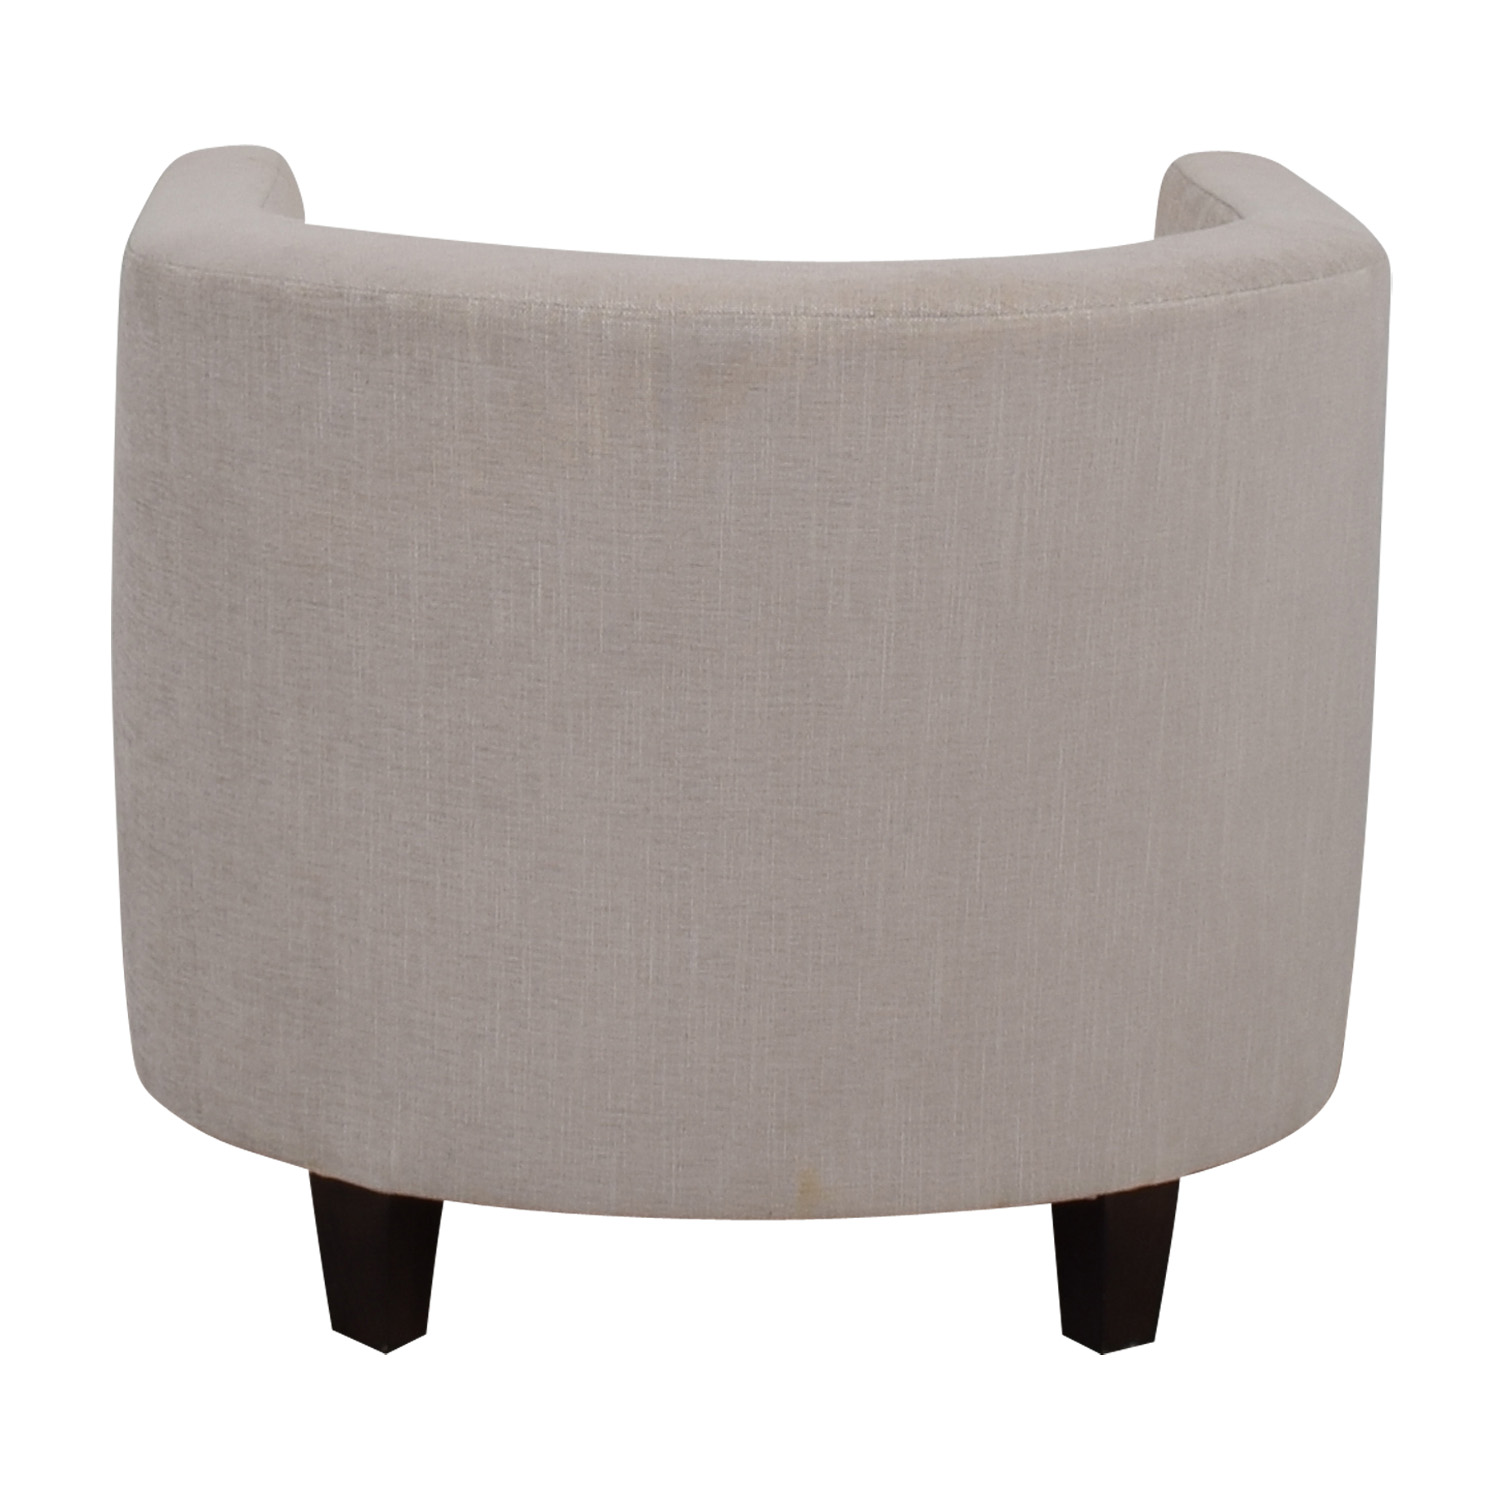 Furniture Masters Furniture Masters Beige Upholstered Barrel Chair dimensions